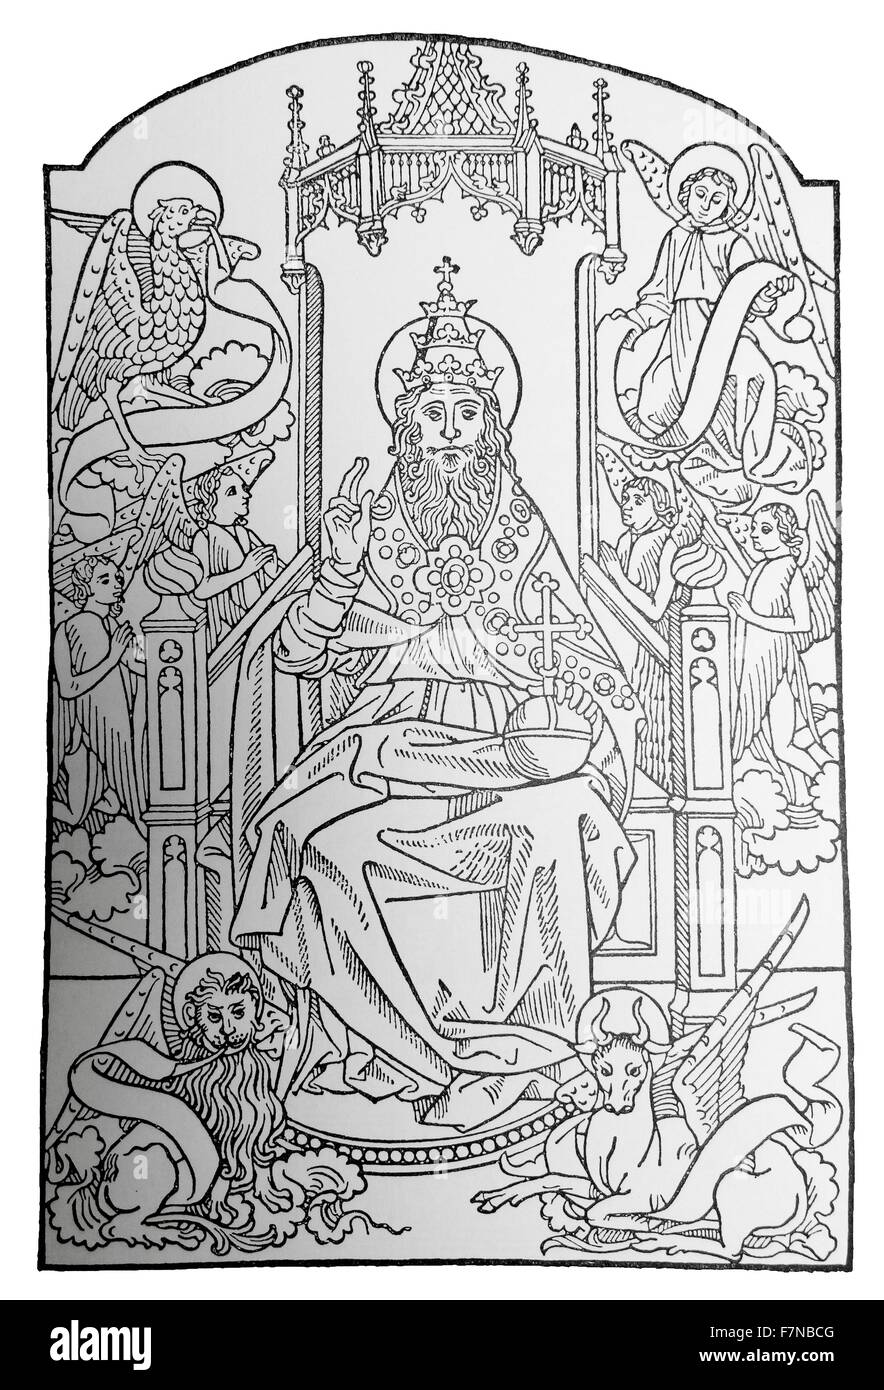 Jean du pre; le pere eternel 1481 woodcut of 'God Enthroned' - Stock Image